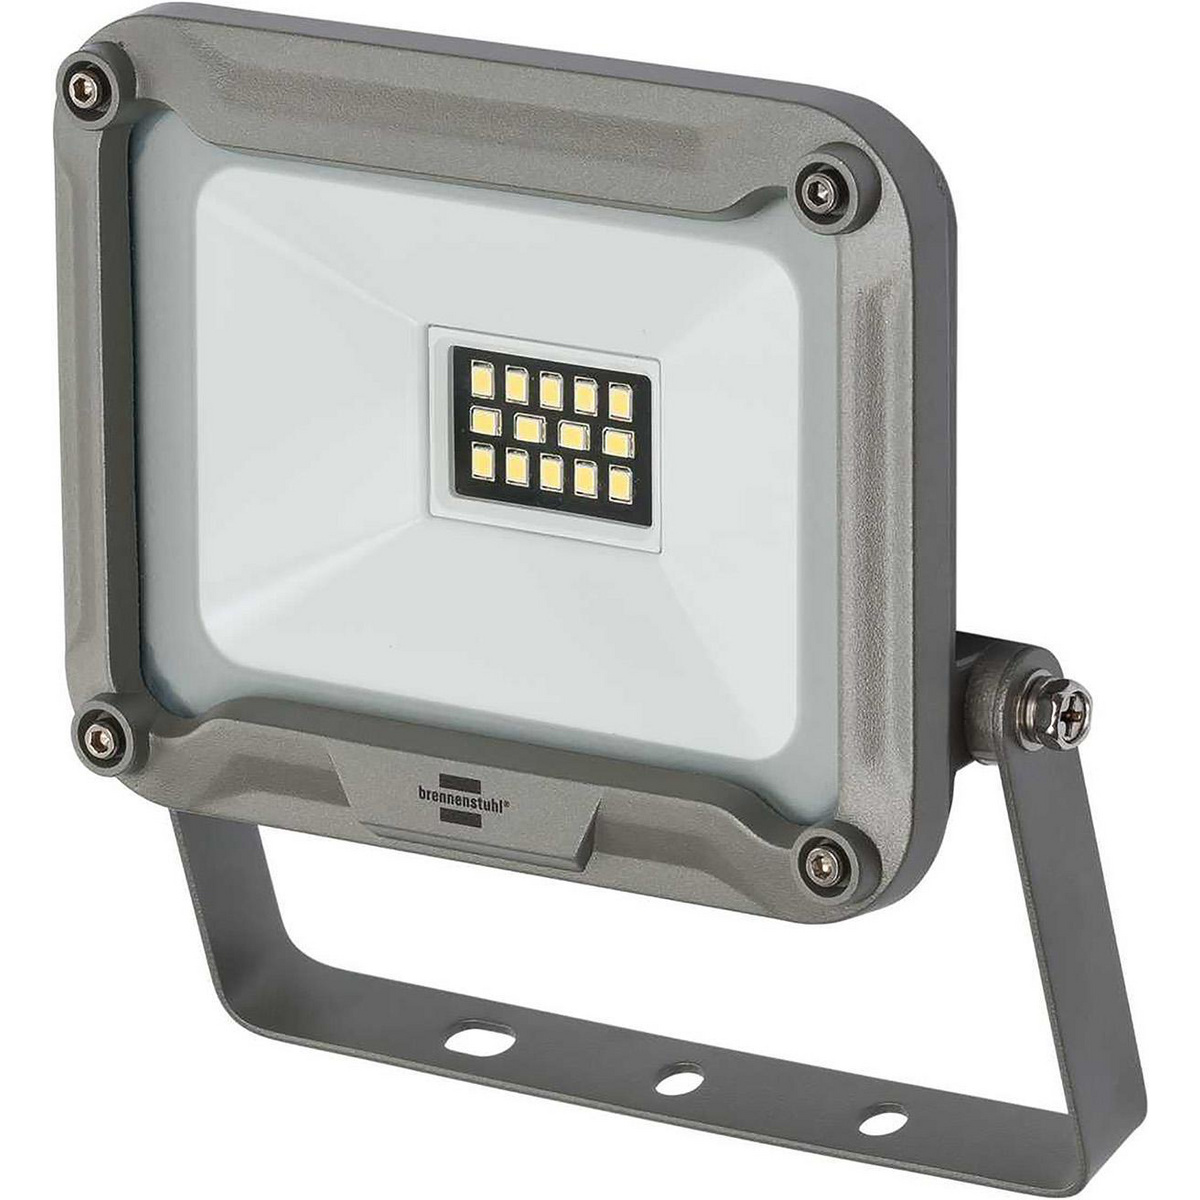 LED Floodlight, 10 W, 900 lm, Silver